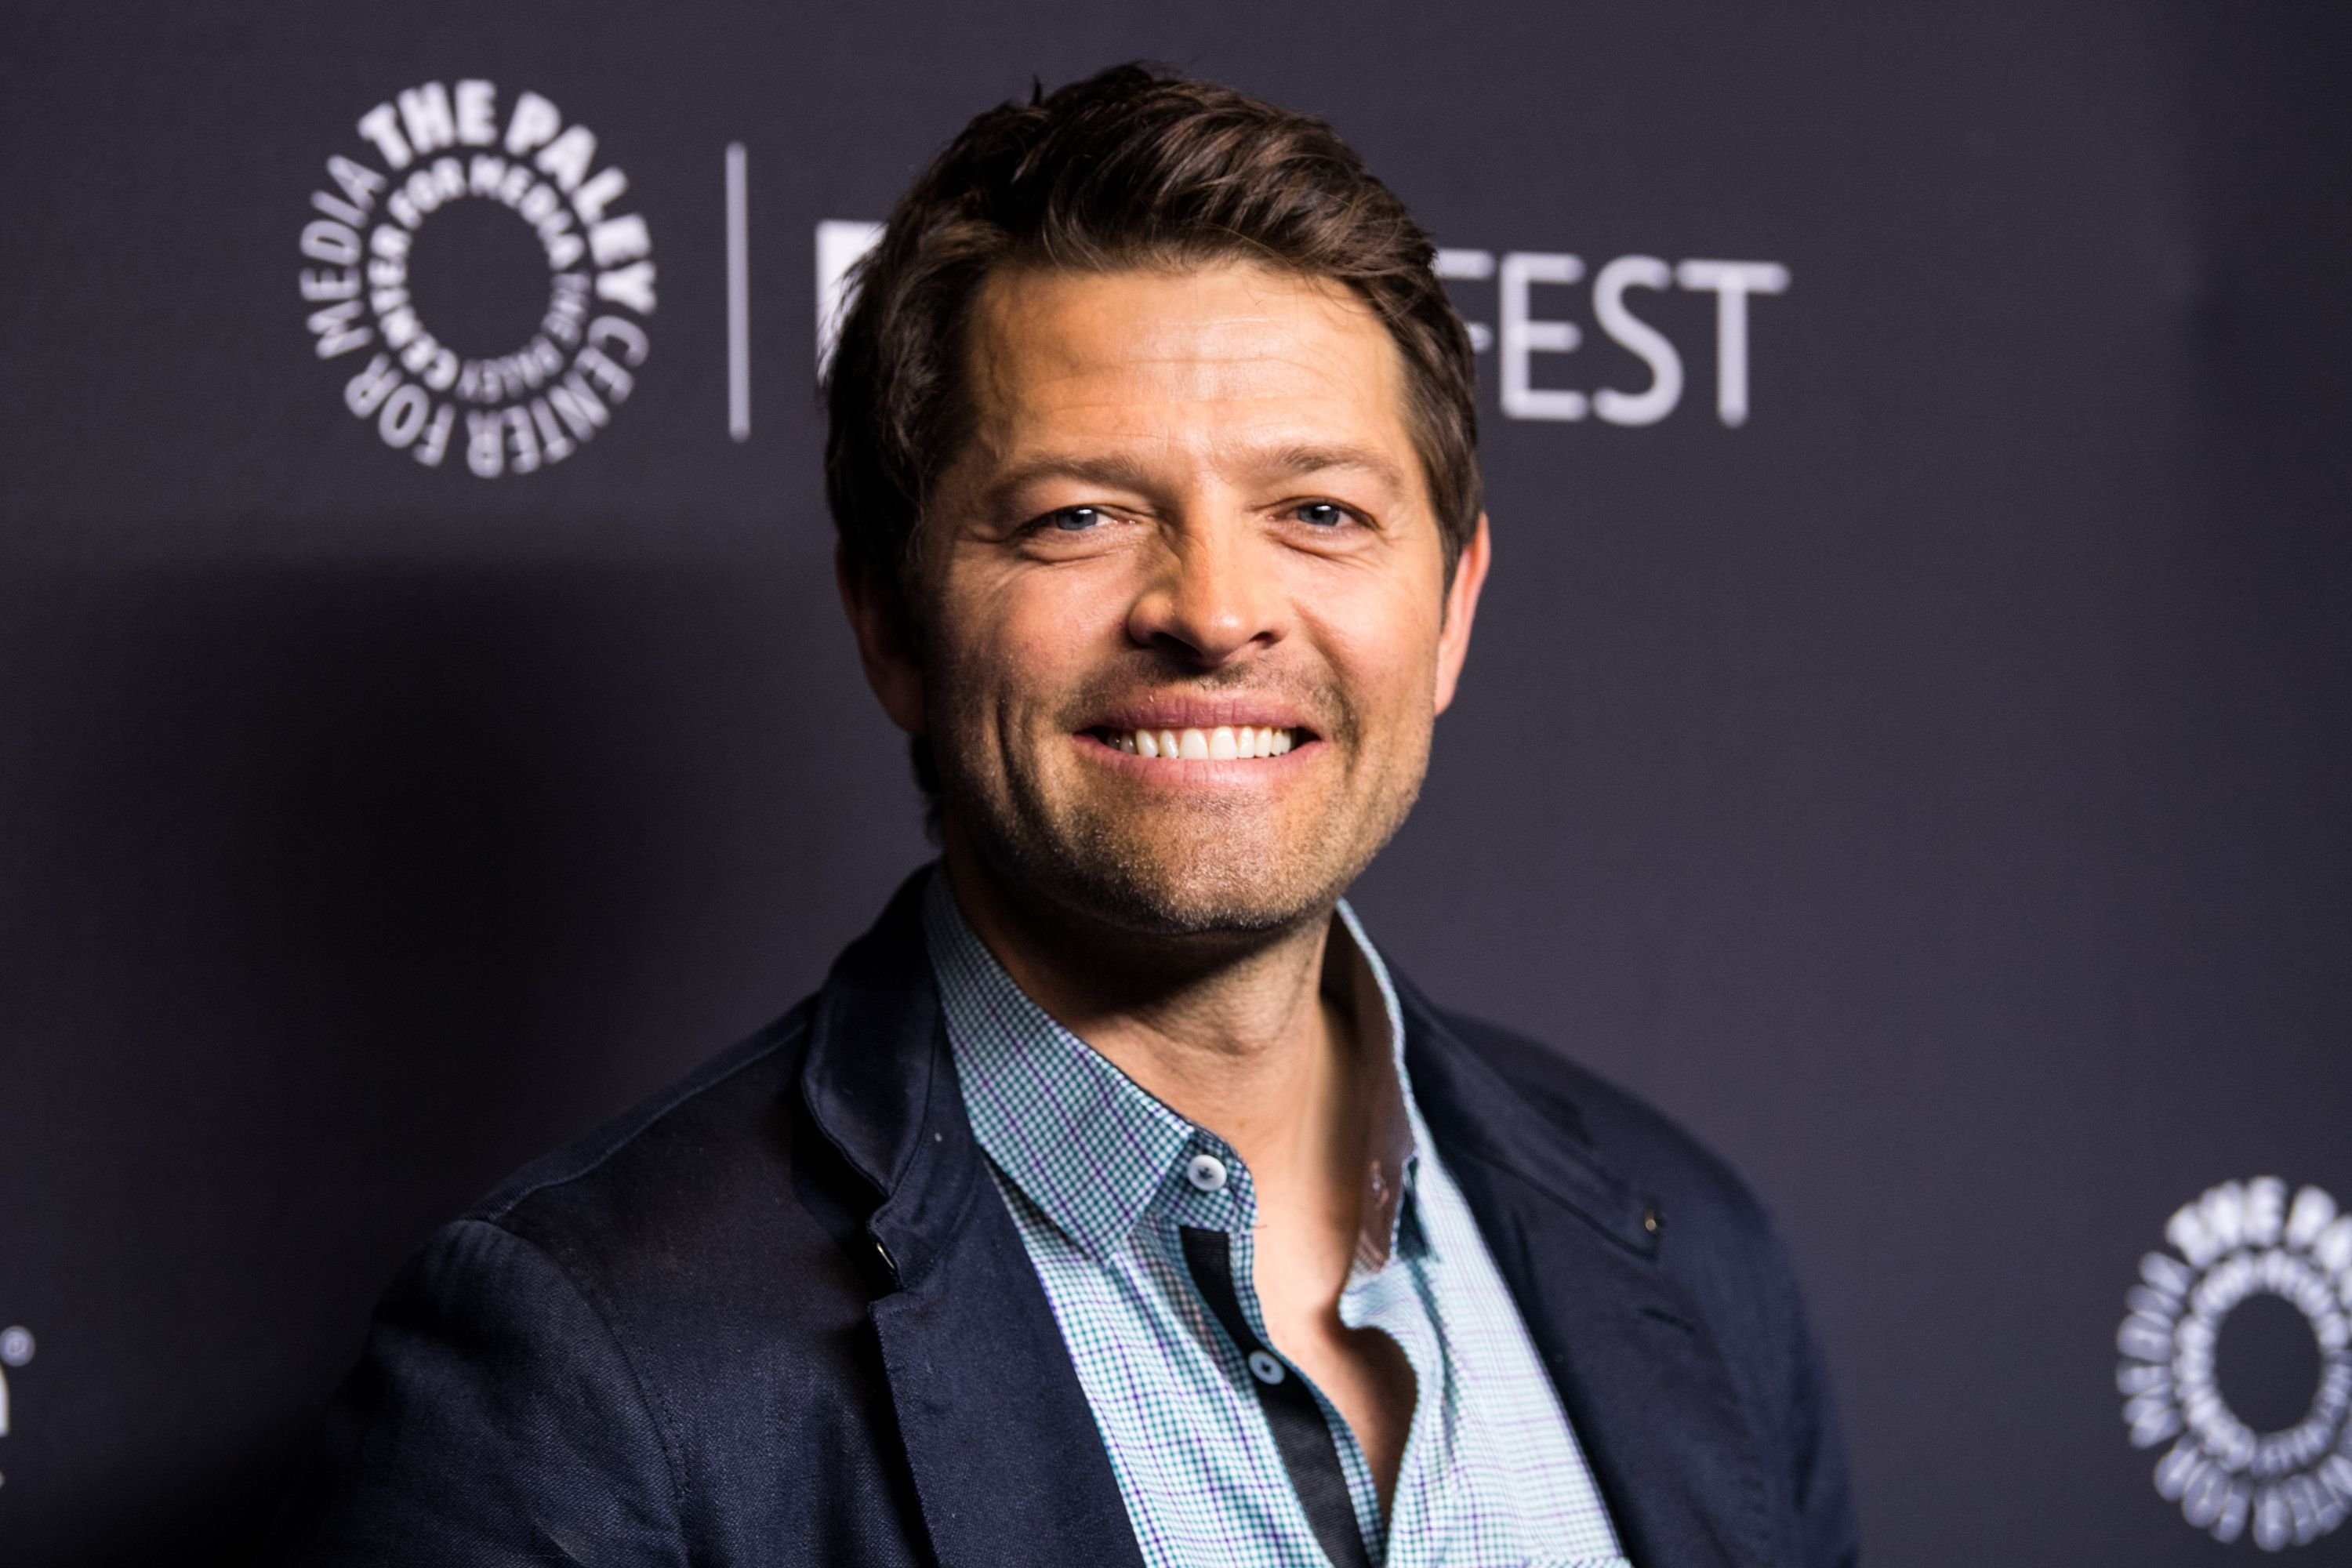 """Misha Collins during the Paley Center for Media's 35th Annual PaleyFest Los Angeles """"Supernatural"""" at Dolby Theatre on March 20, 2018 in Hollywood, California. 